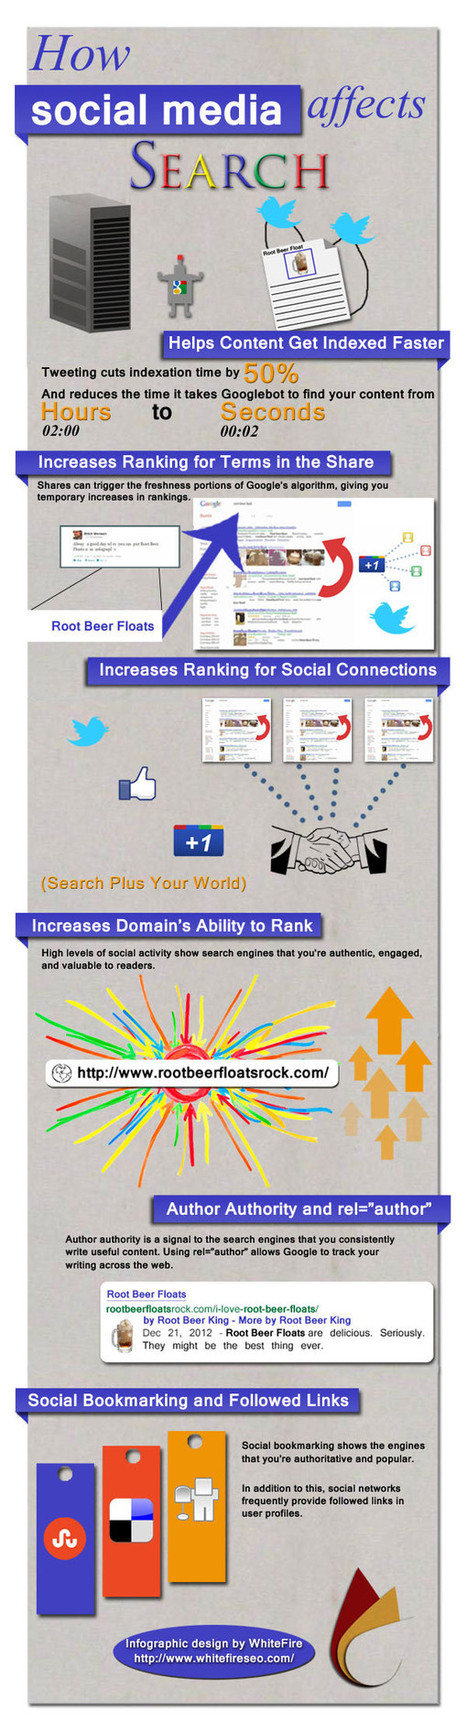 How Social Media Impacts SEO and Site Ranking: infographic | NYL - News YOU Like | Scoop.it